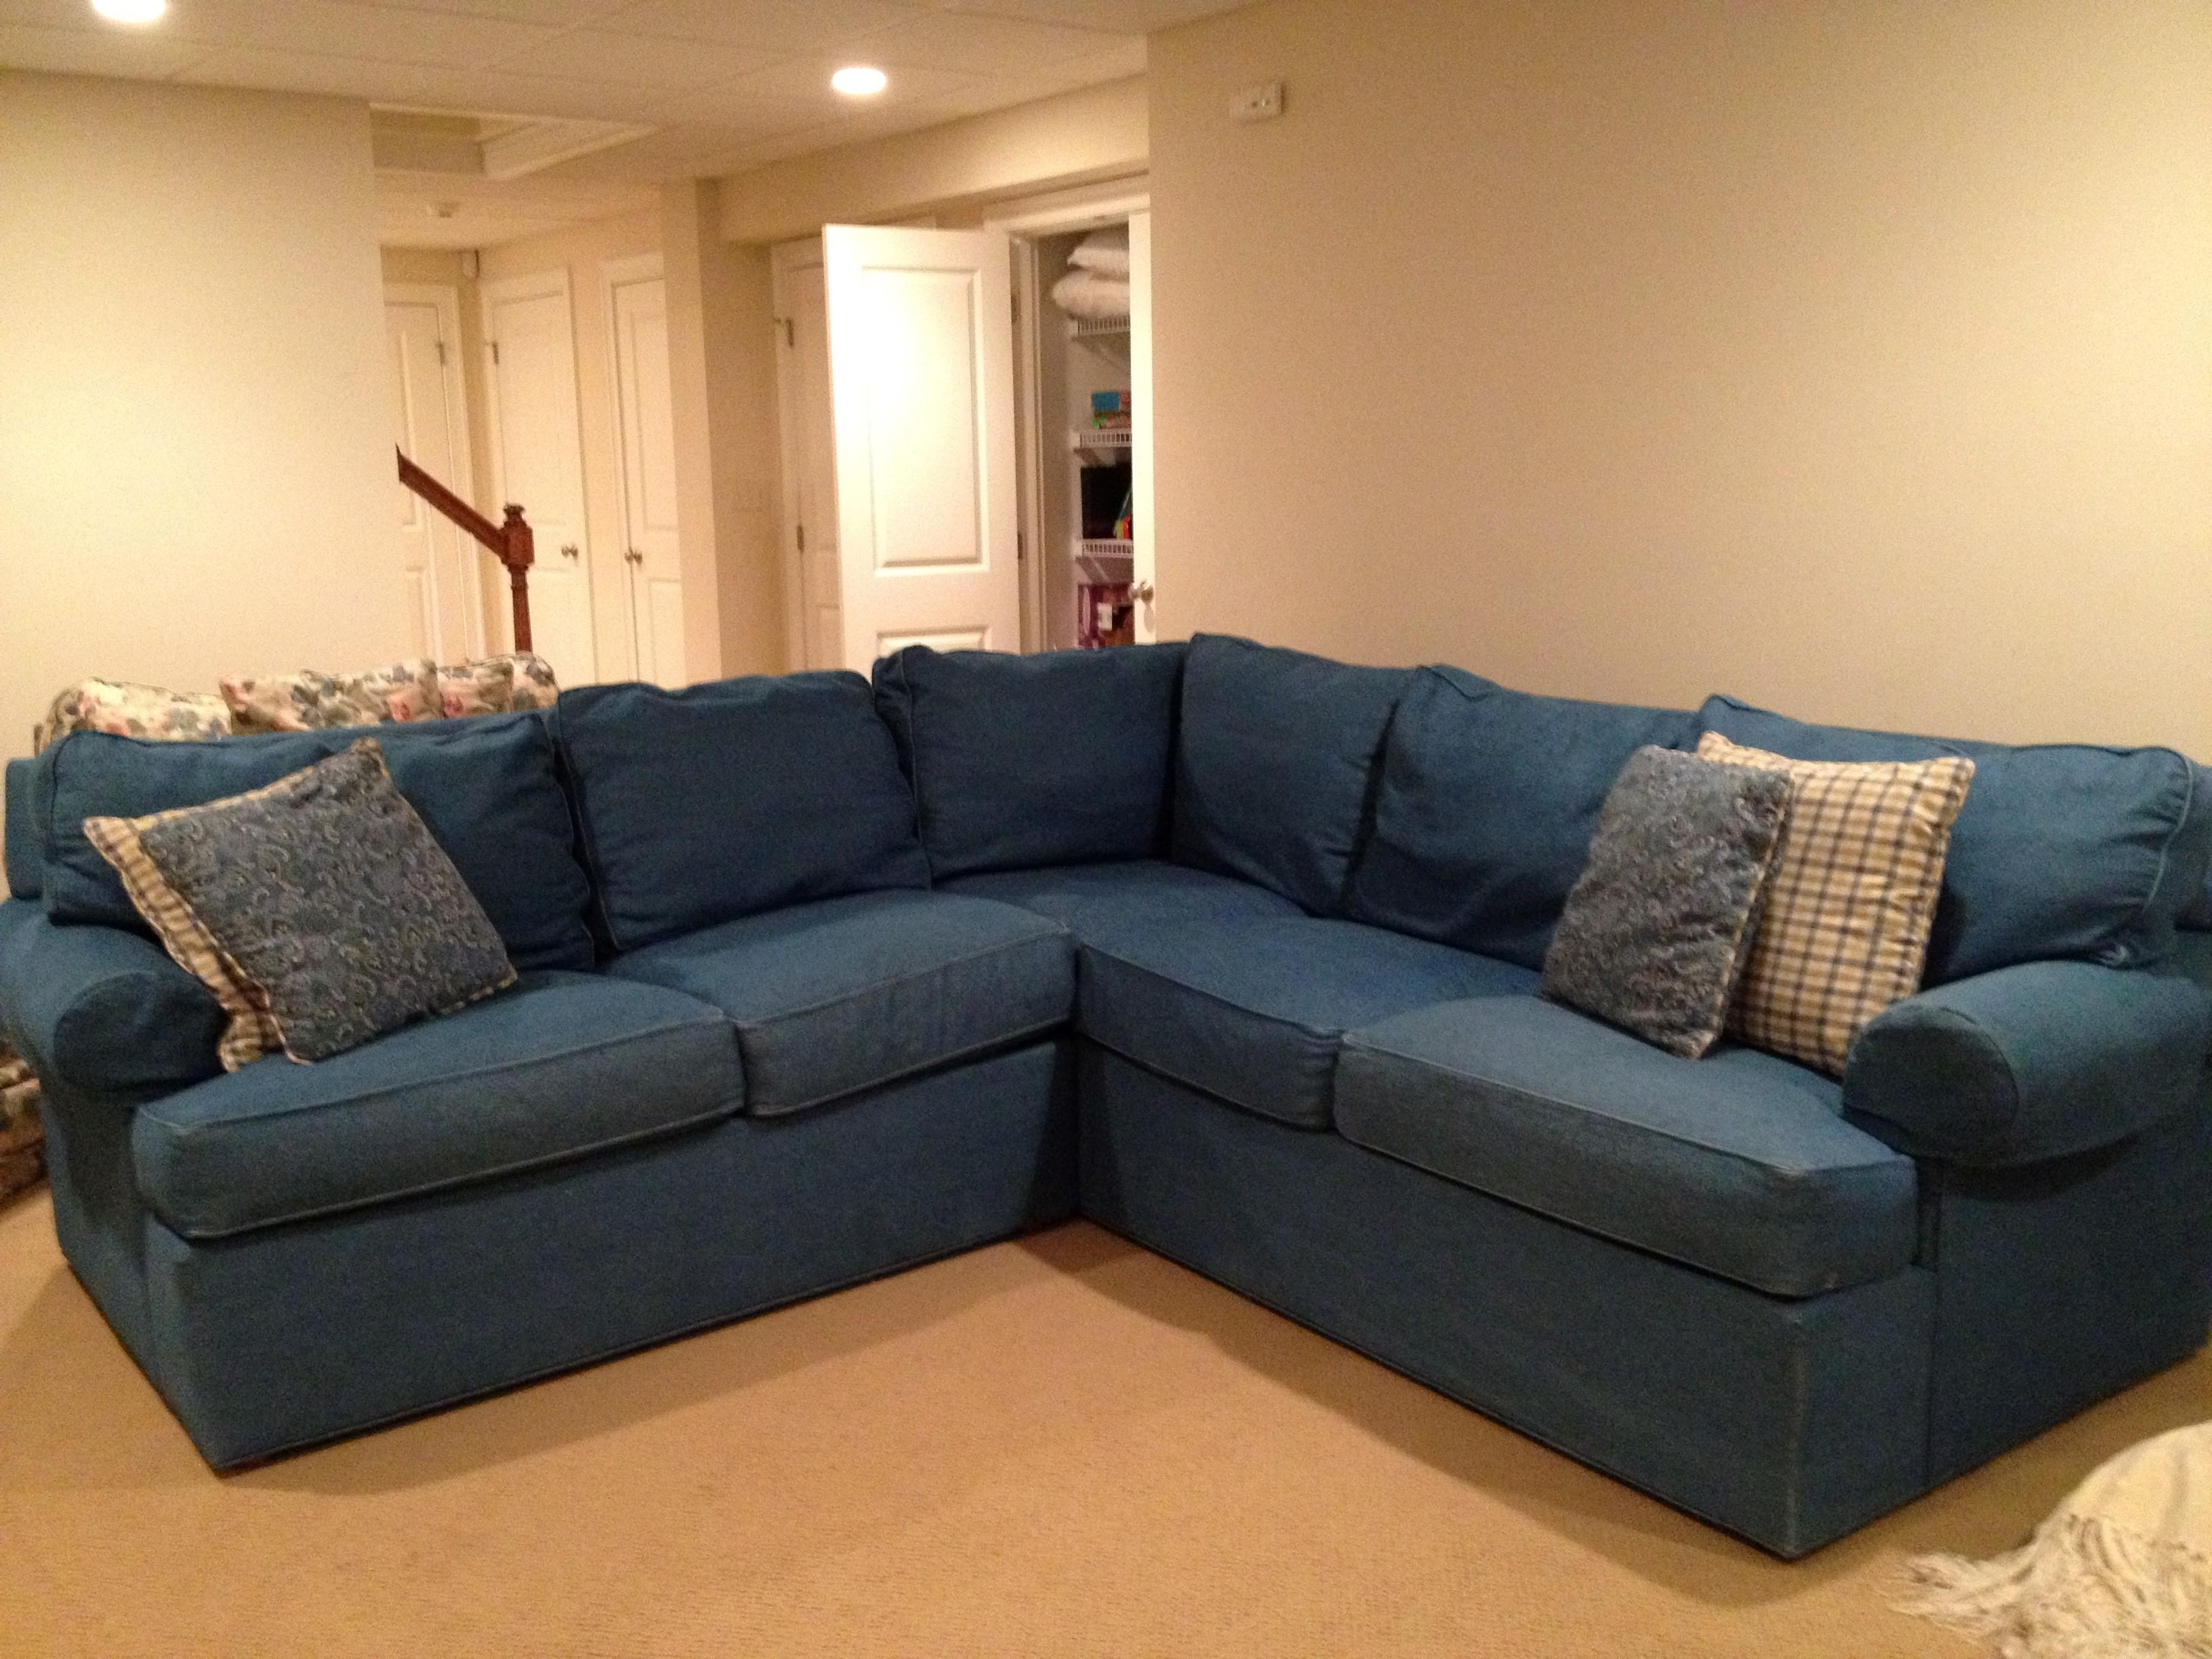 Sectional Sofa Craigslist With Ideas Design 30949 | Kengire For Craigslist Sectional (Image 13 of 15)